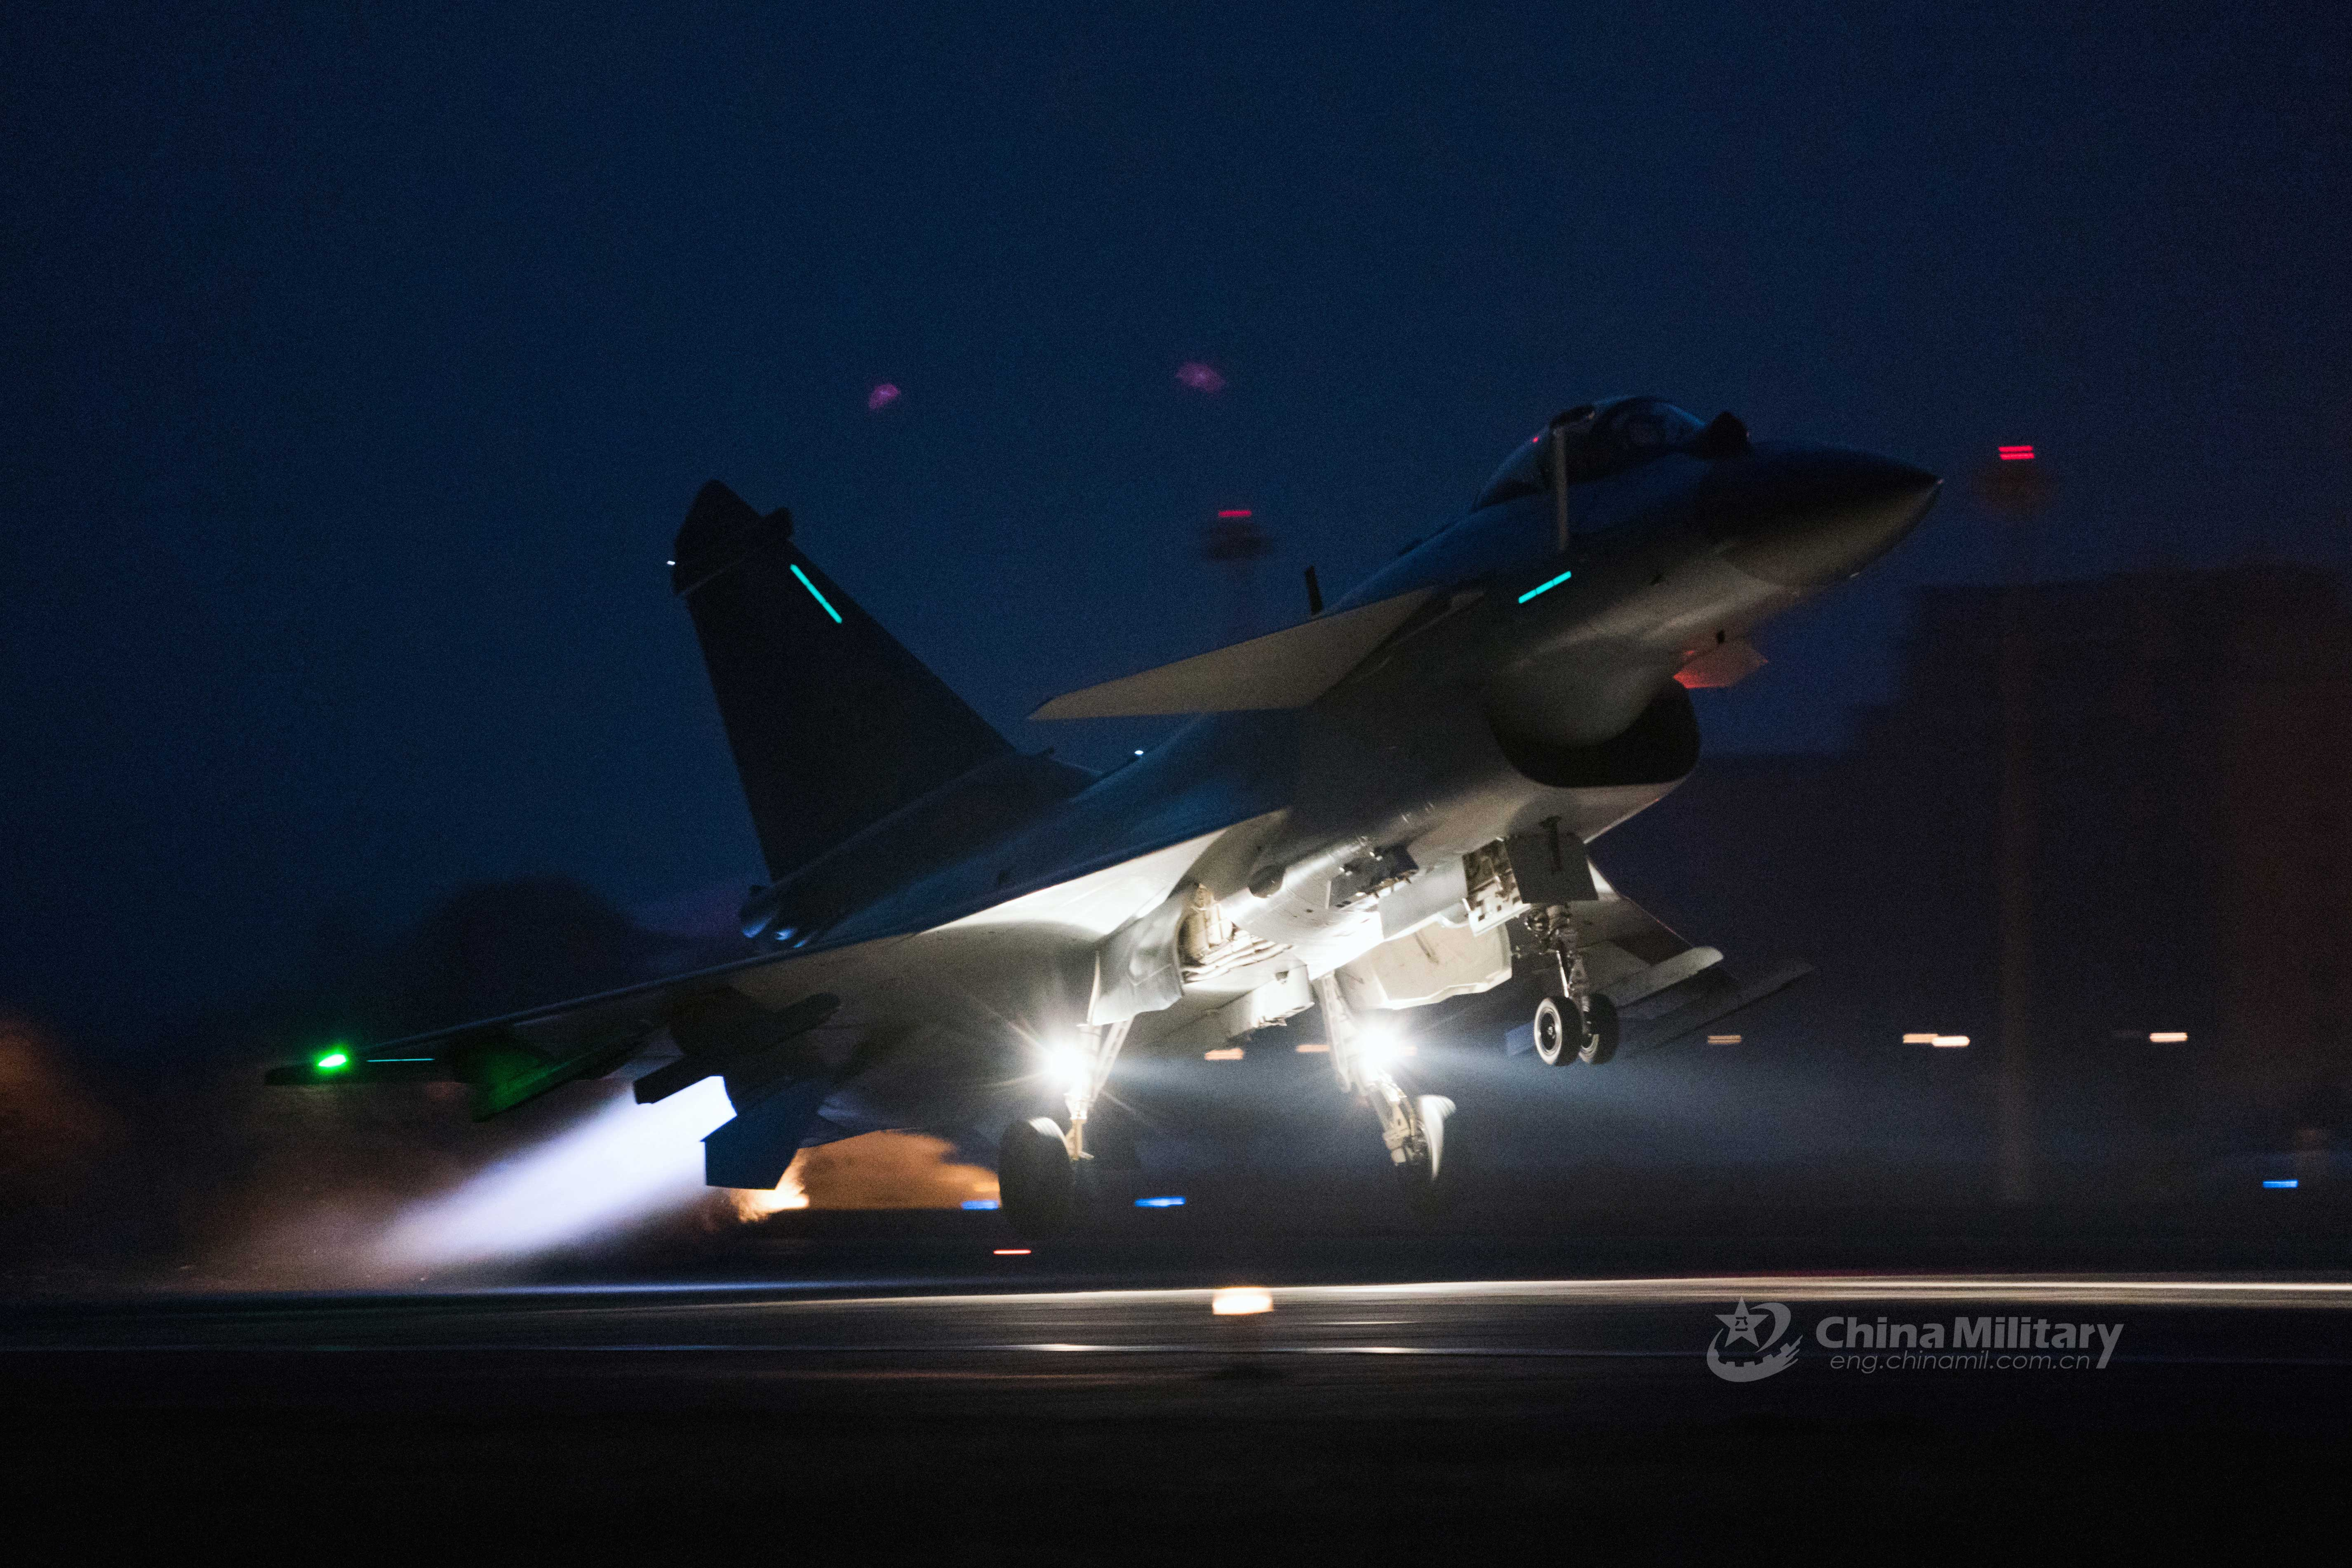 J-10 fighter jet takes off at night - China Military